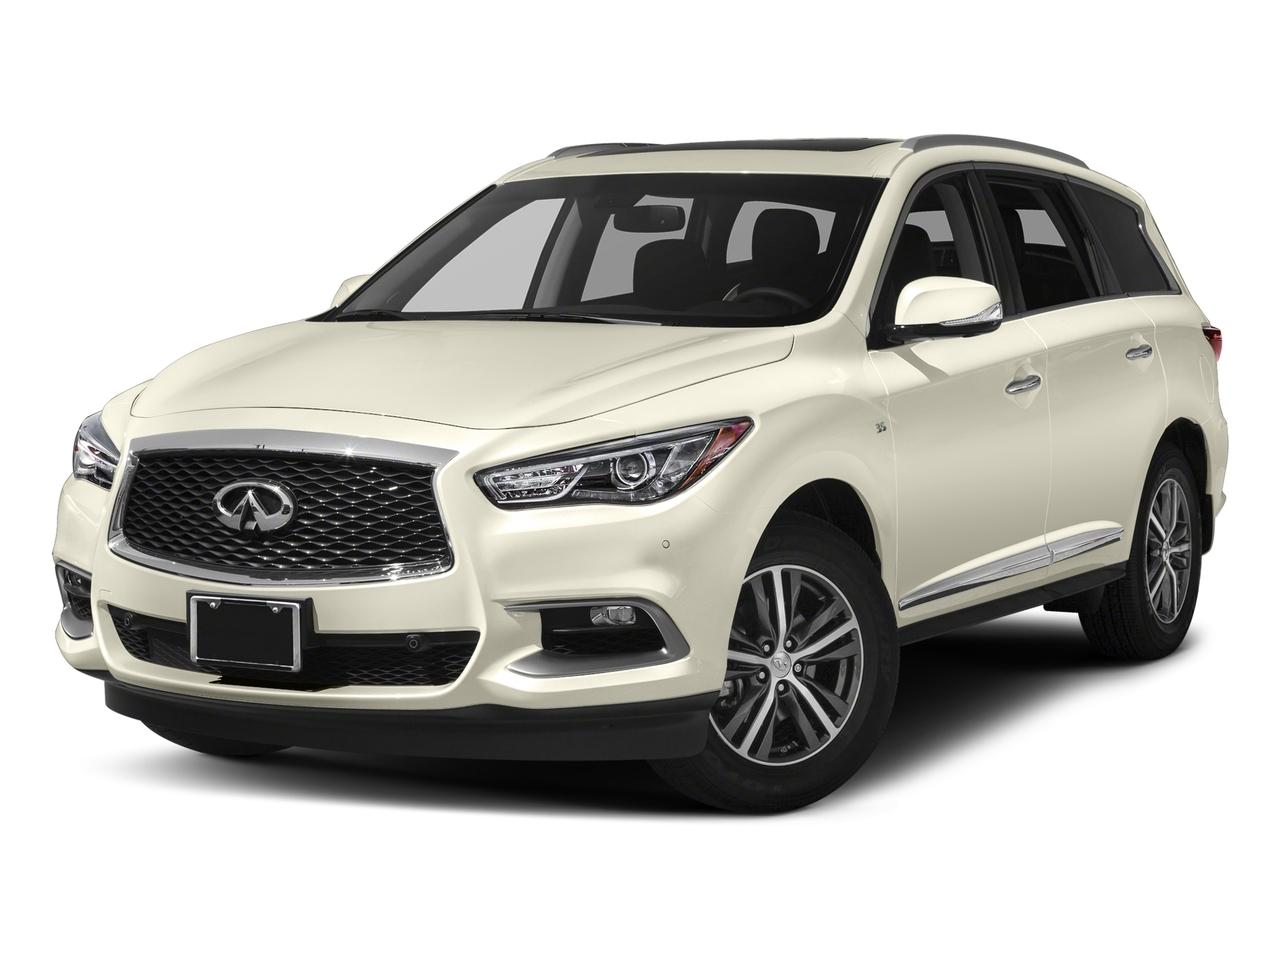 2017 INFINITI QX60 Vehicle Photo in San Antonio, TX 78230